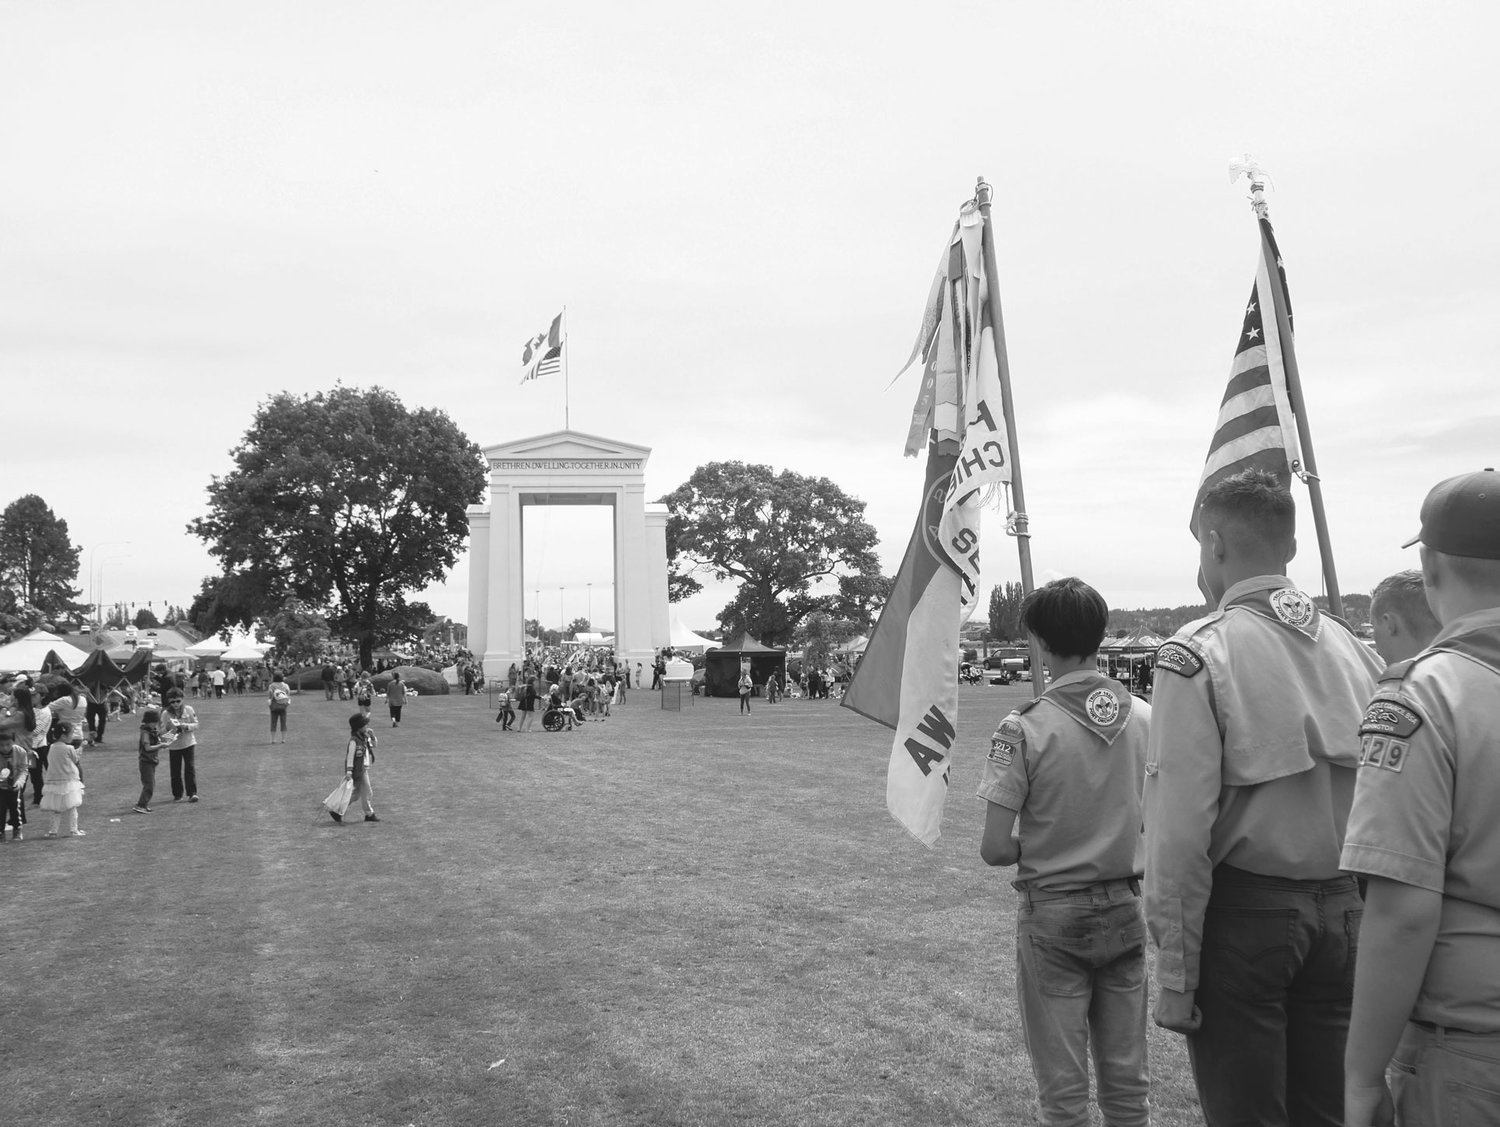 Scouts at Hands Across the Border on June 9, 2019.